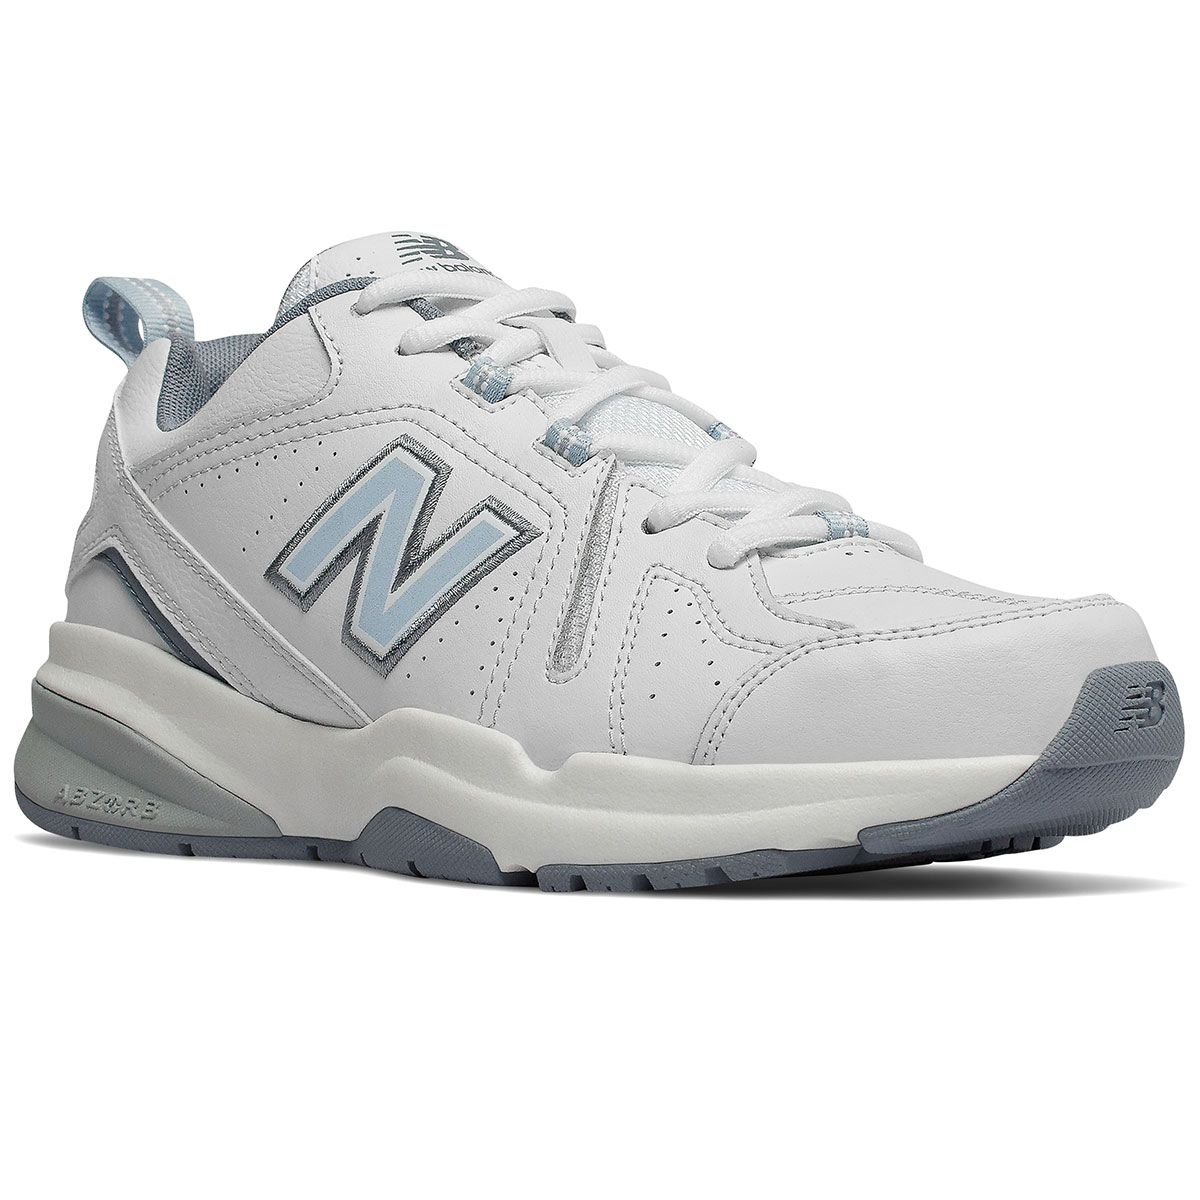 New Balance Women's 608V5 Cross-Training Shoes, Wide - White, 11